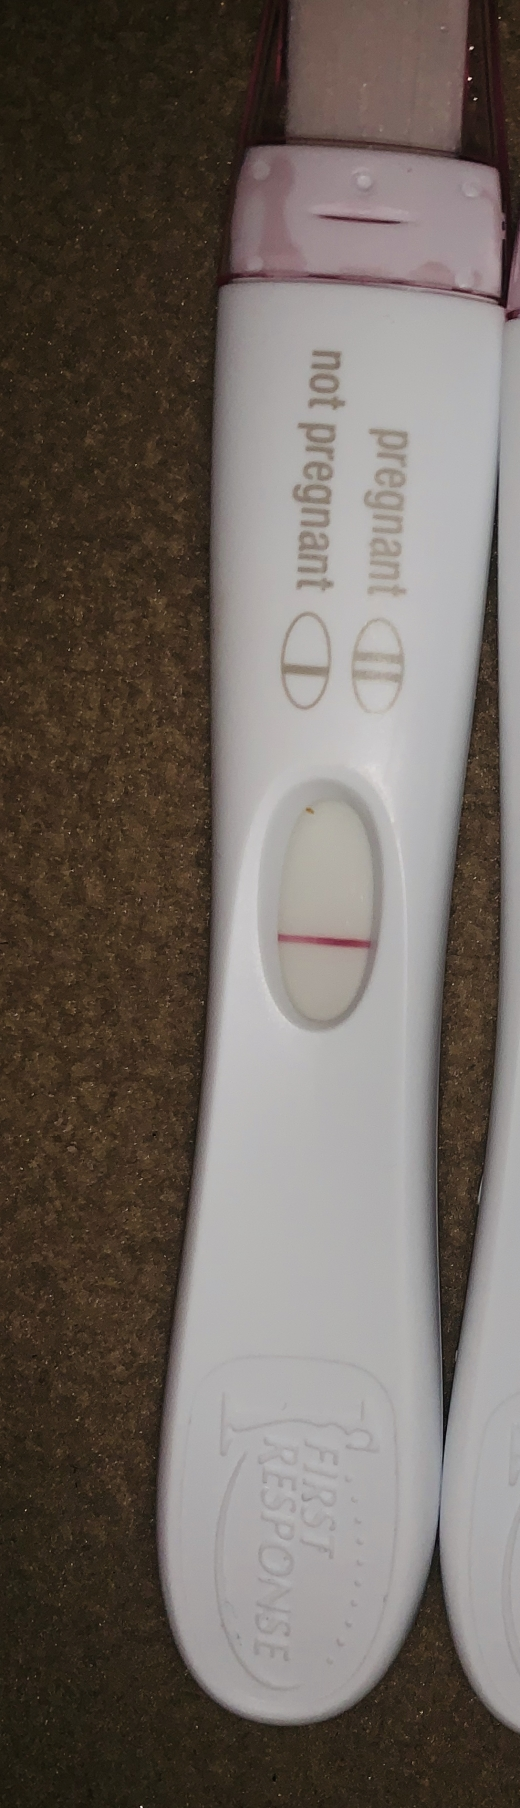 First Response Rapid Pregnancy Test, 7 DPO